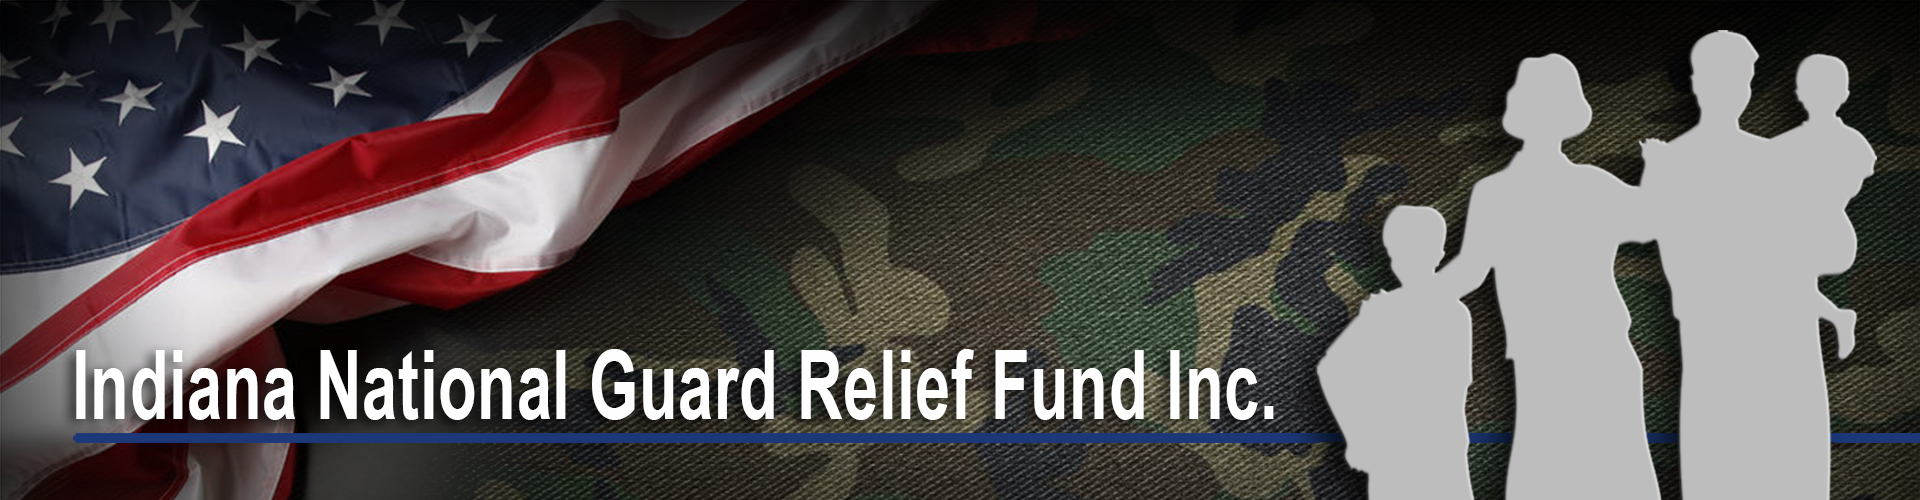 Header image for Indiana National Guard Relief Fund, Inc